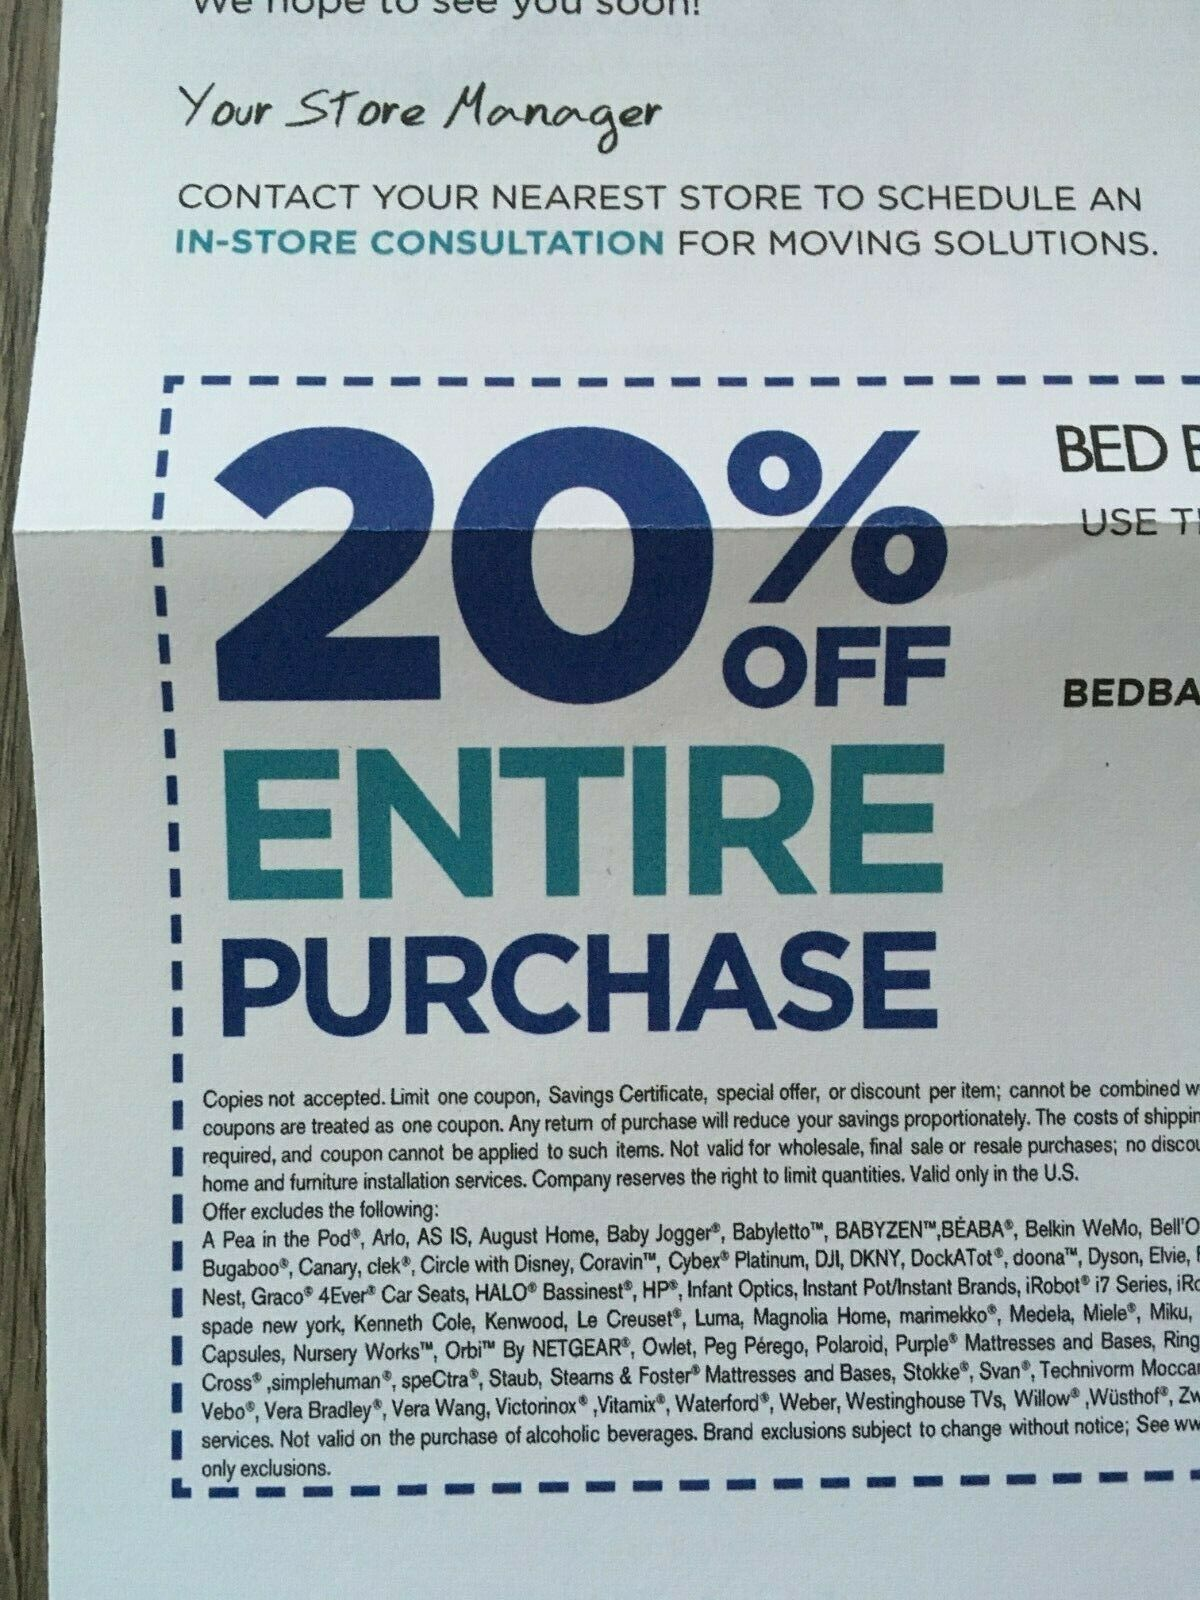 Bed Bath and Beyond 20% Off ENTIRE PURCHASE Coupon Exp. 2/11/2020